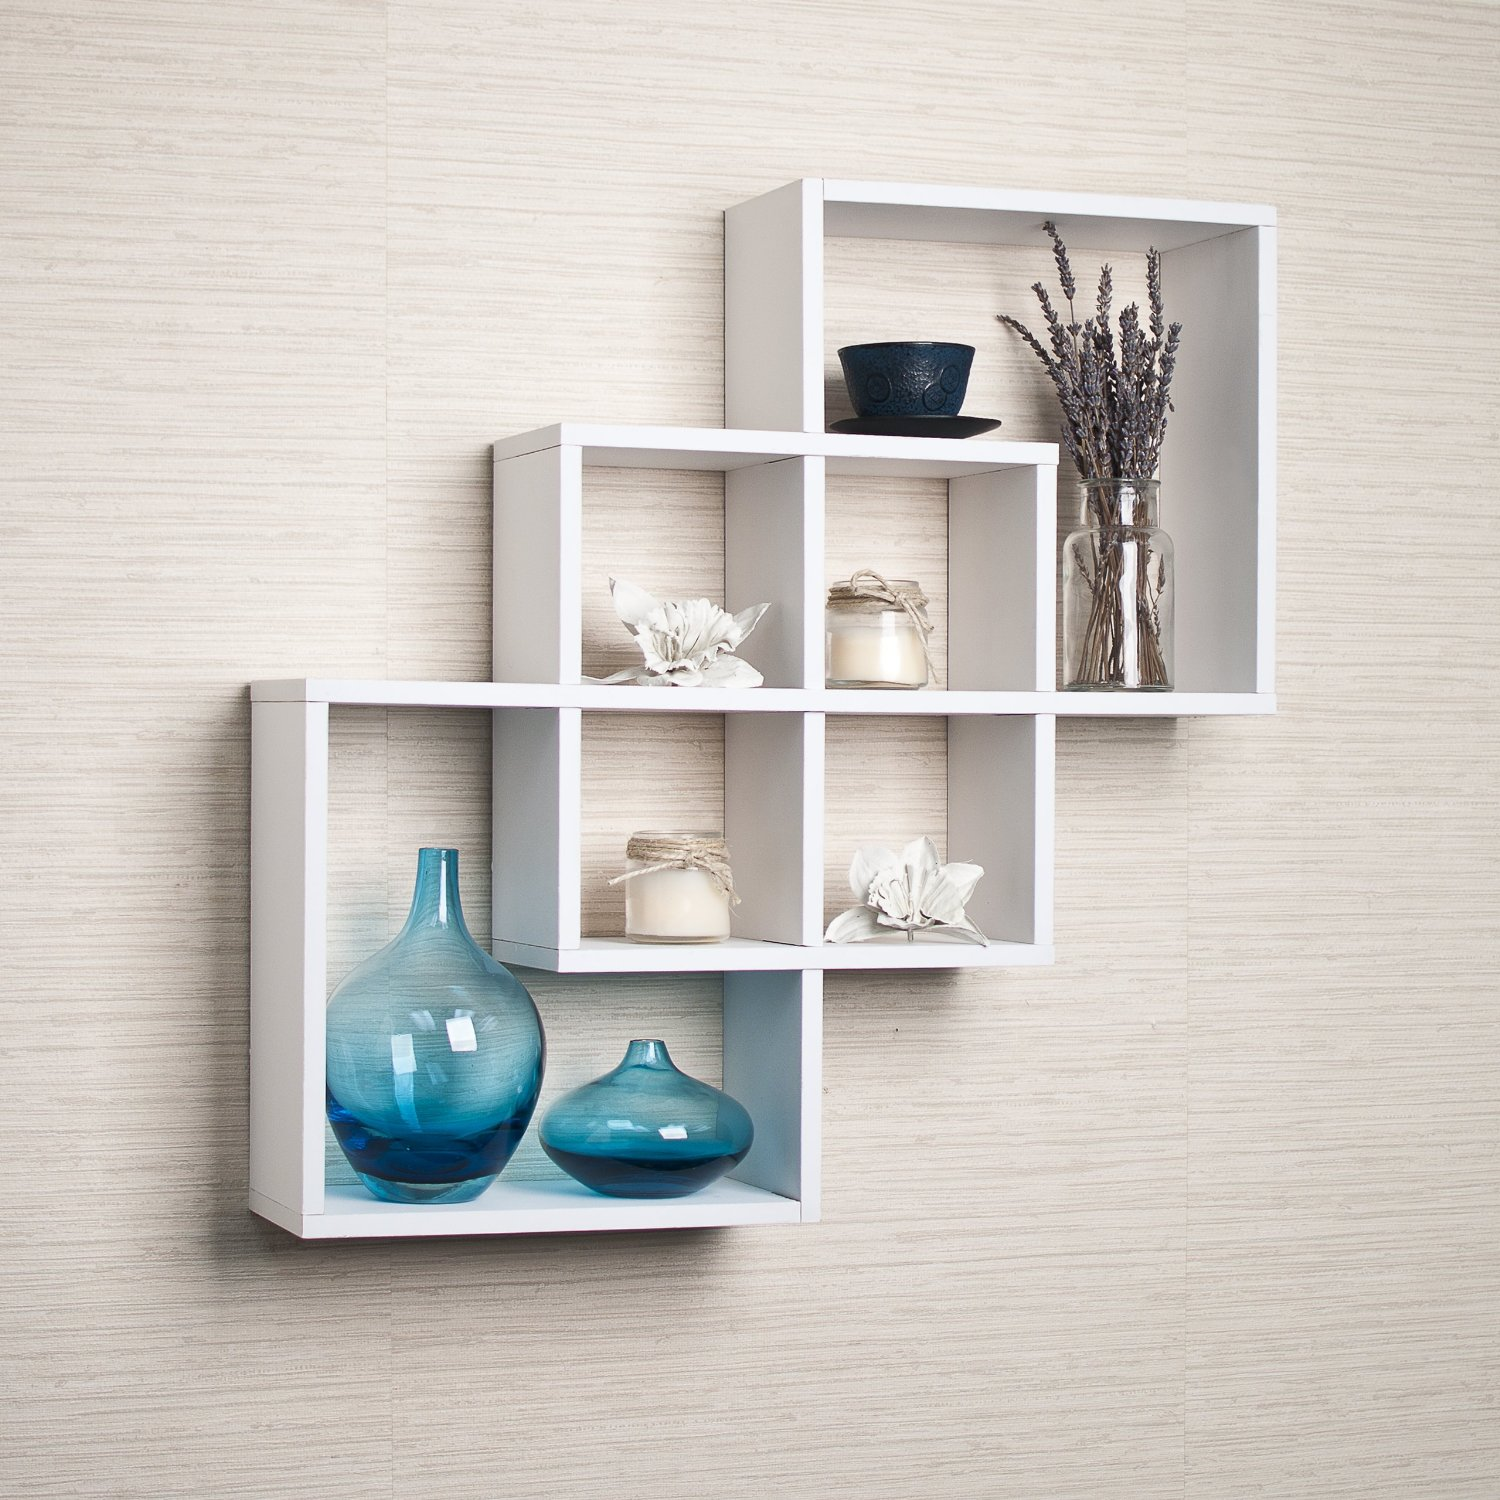 Best Shelving Units   Reviews Of Floating Shelves,corner Shelves ...